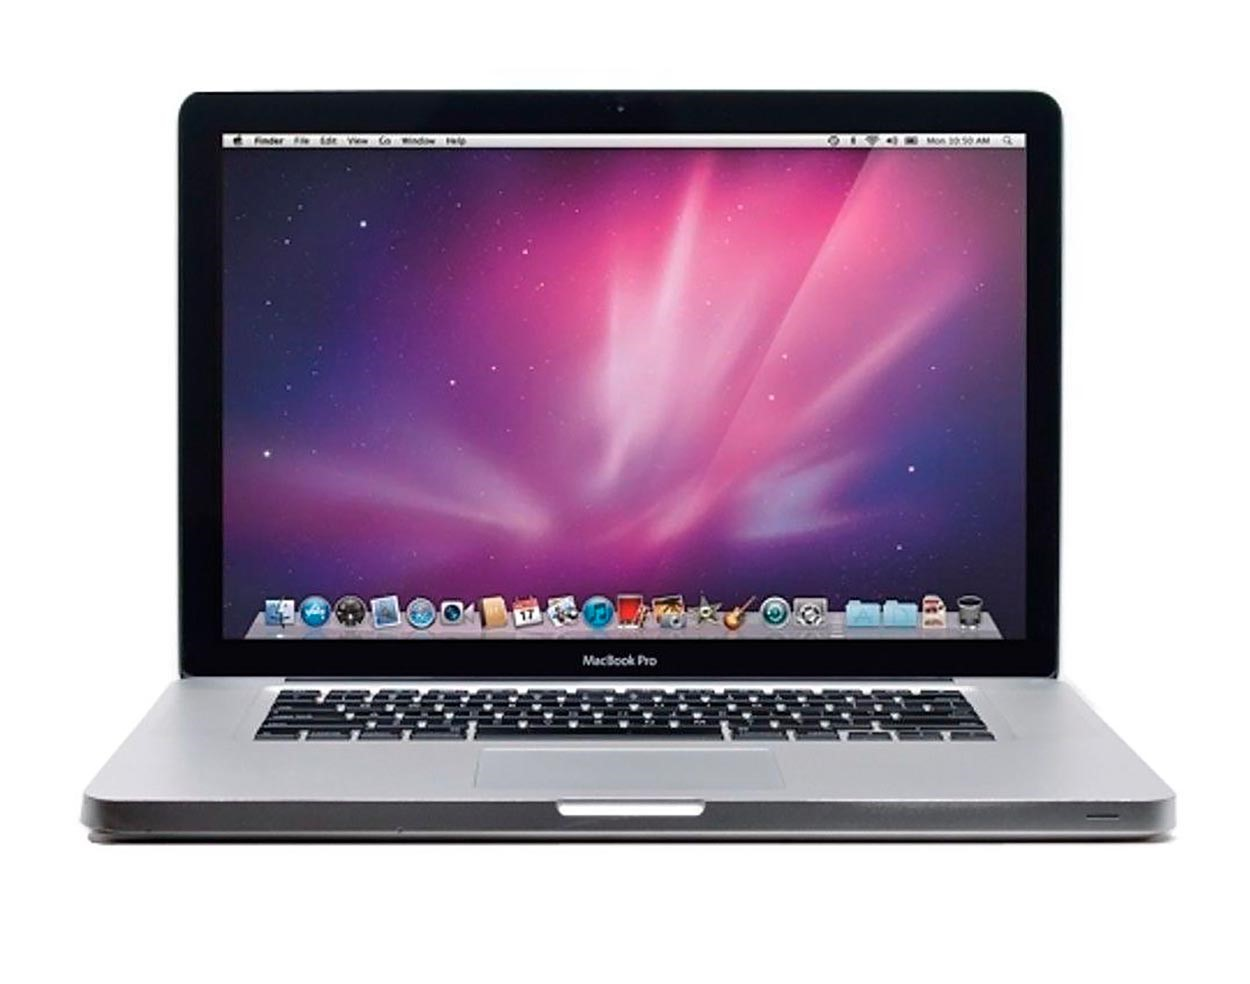 لپ تاپ استوک اپل مدل Apple MacBook Pro 2009 با مشخصات Core 2 DUO-8GB-500GB HDD-2GB Nvidia Geforce 9400Mlaptop-stock-Apple-model-MacBook-Pro-2009-Core-2-DUO-8GB-500GB-HDD-2GB-Nvidia-Geforce-9400M